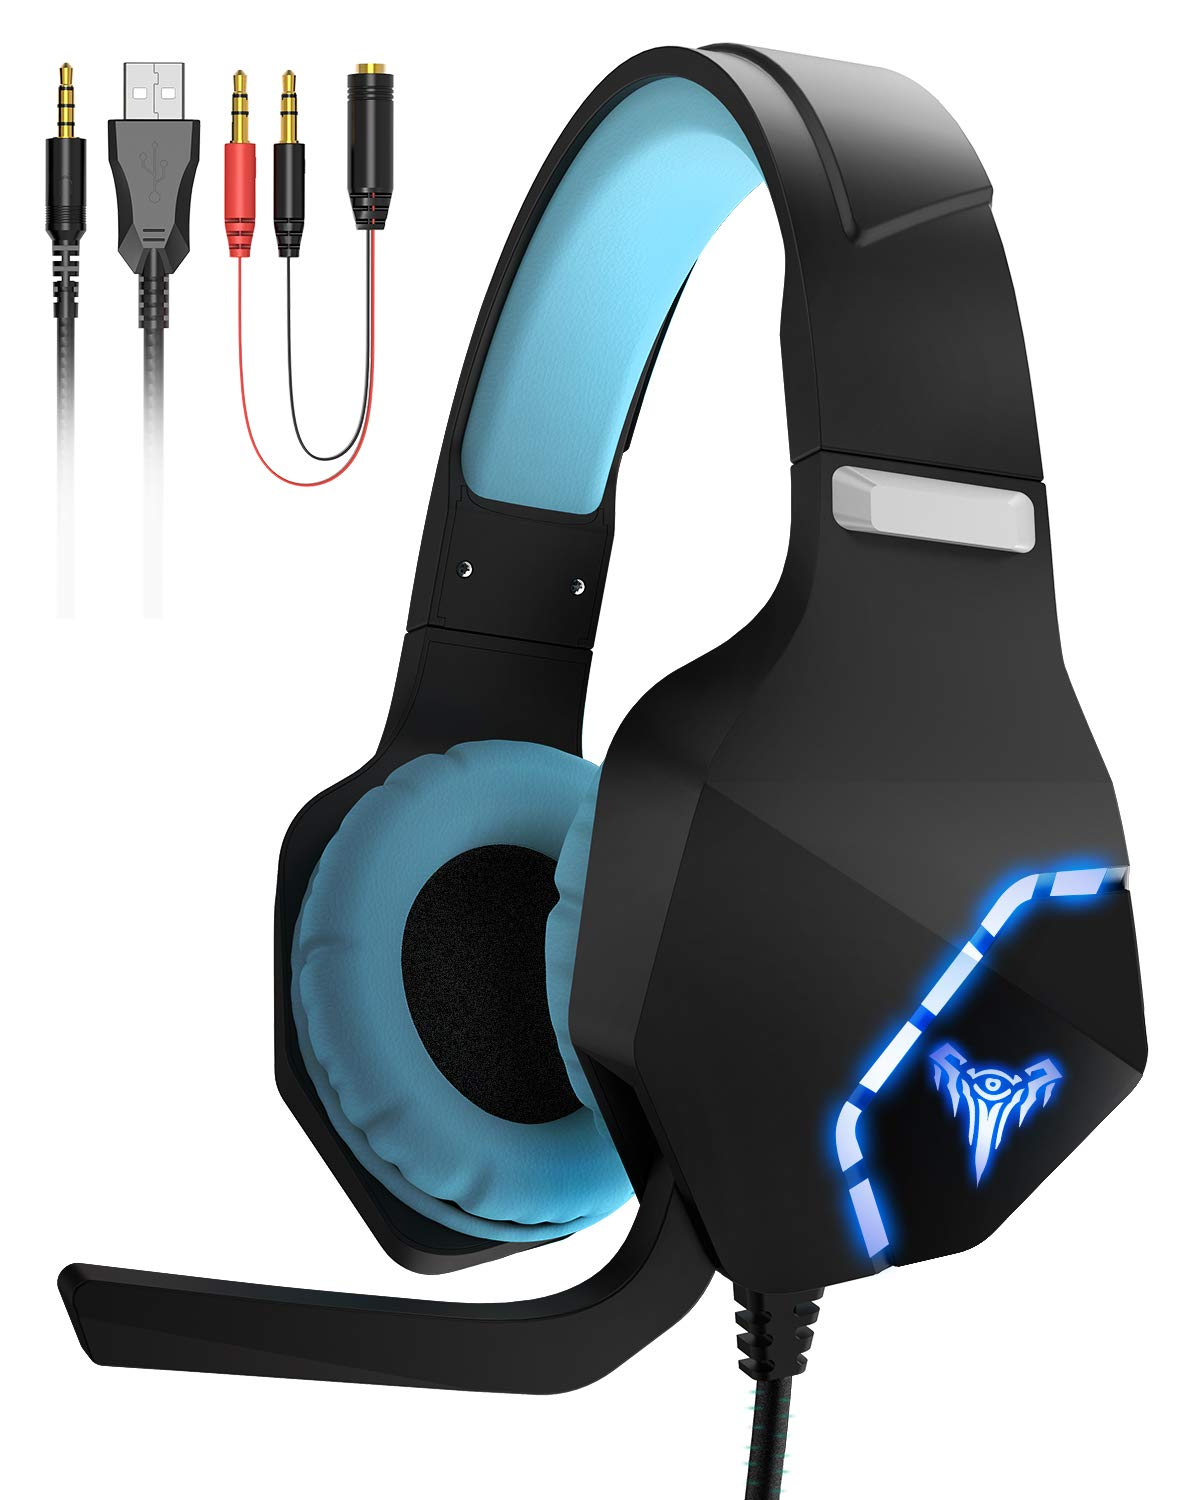 Giaride Gaming Headphones Surround Stereo with Mic Soft Memory Earmuffs Noise Cancelling LED Lights Volume Control for PS4 Xbox One, PC, Mac, Smartphones, Nintendo Switch Games